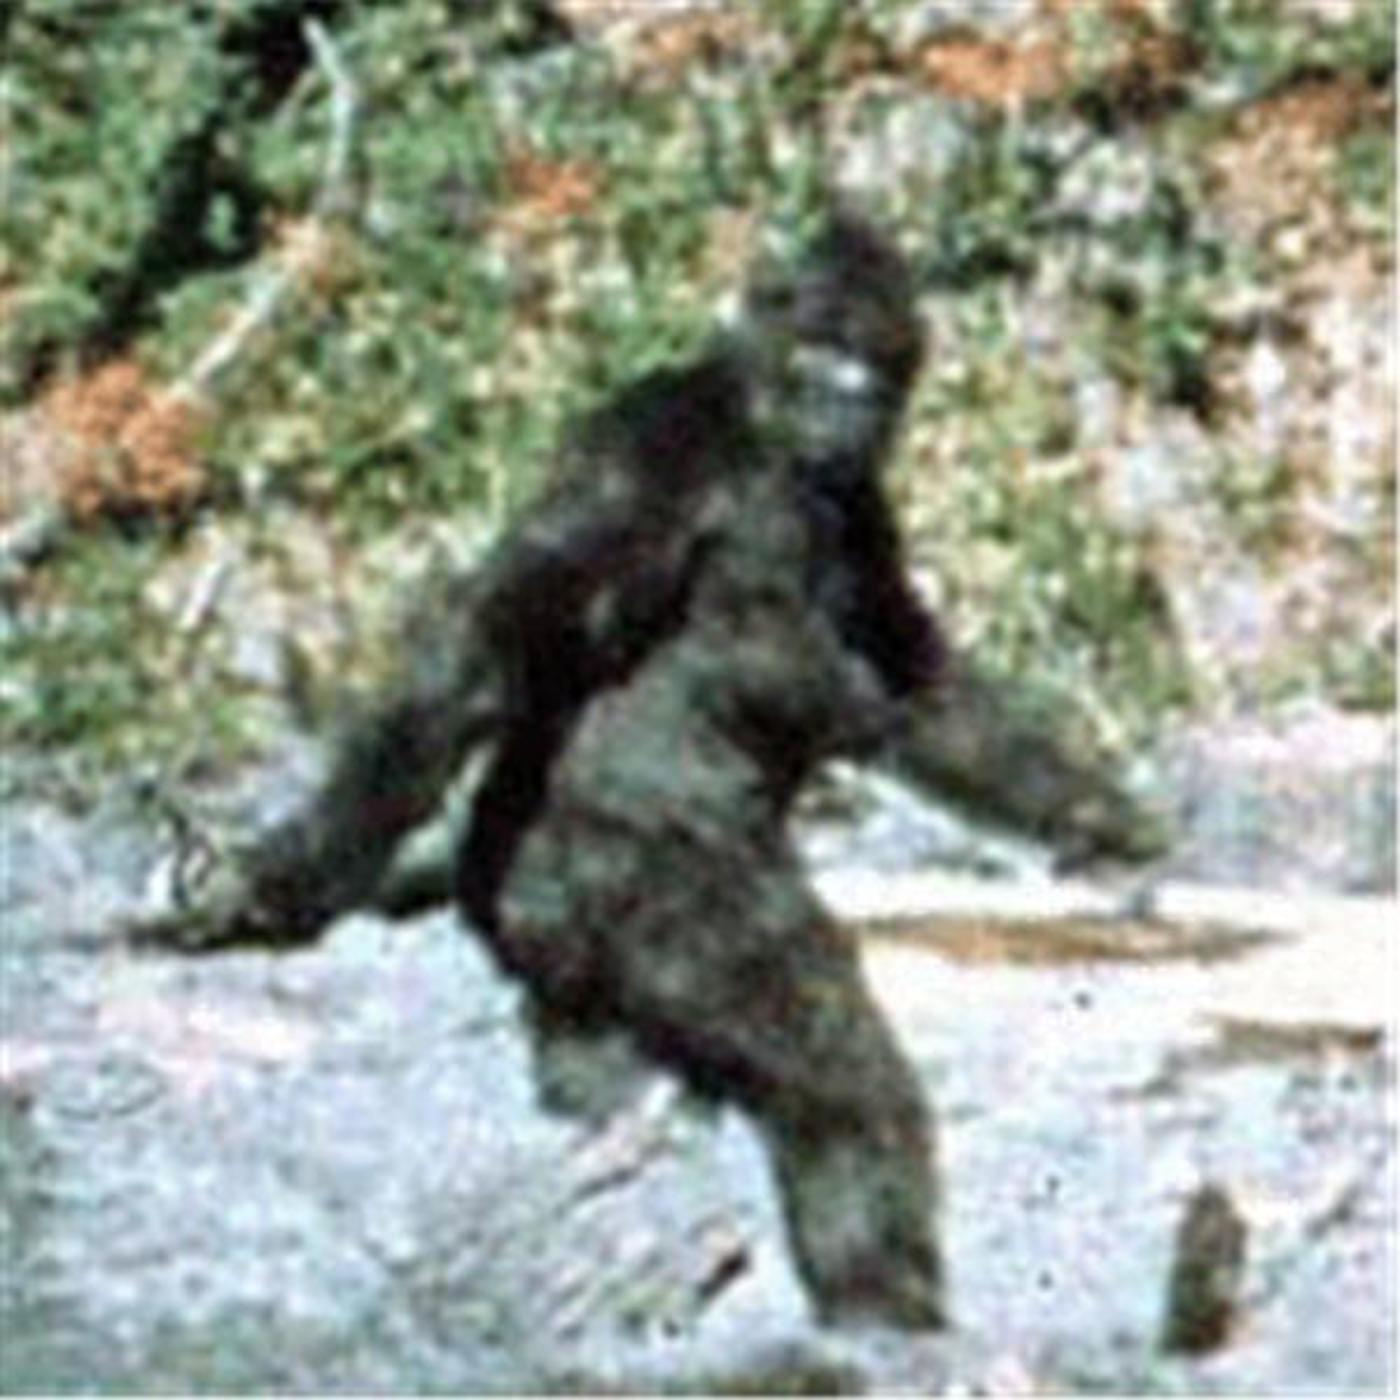 Bigfoot Ground Zero - Chris Spencer Interview. Student of Prof. Grover Krantz